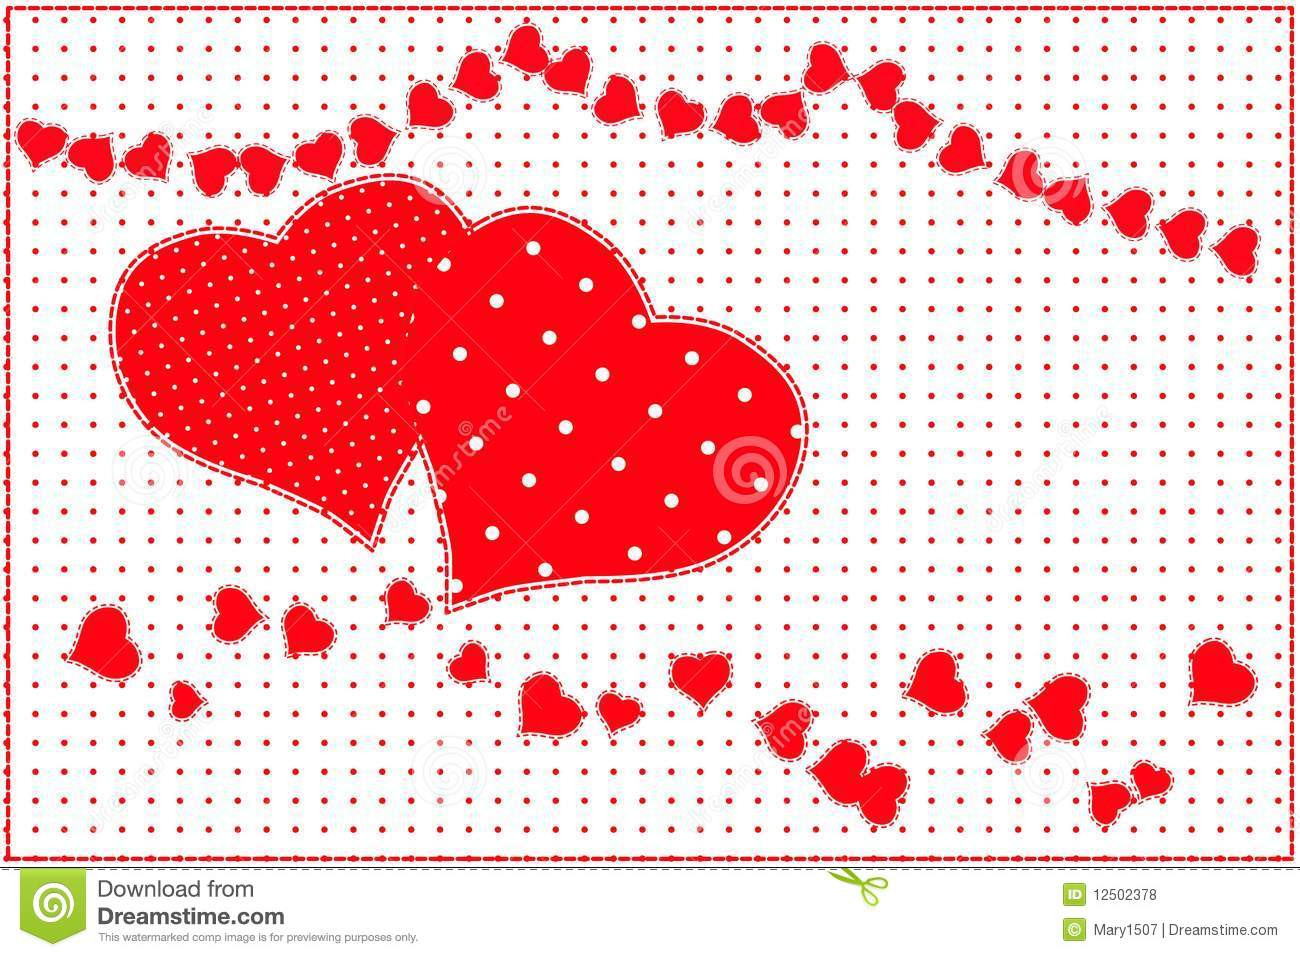 Red Heart Patterns Fresh Red Heart Pattern Royalty Free Stock S Image Of Contemporary 46 Ideas Red Heart Patterns